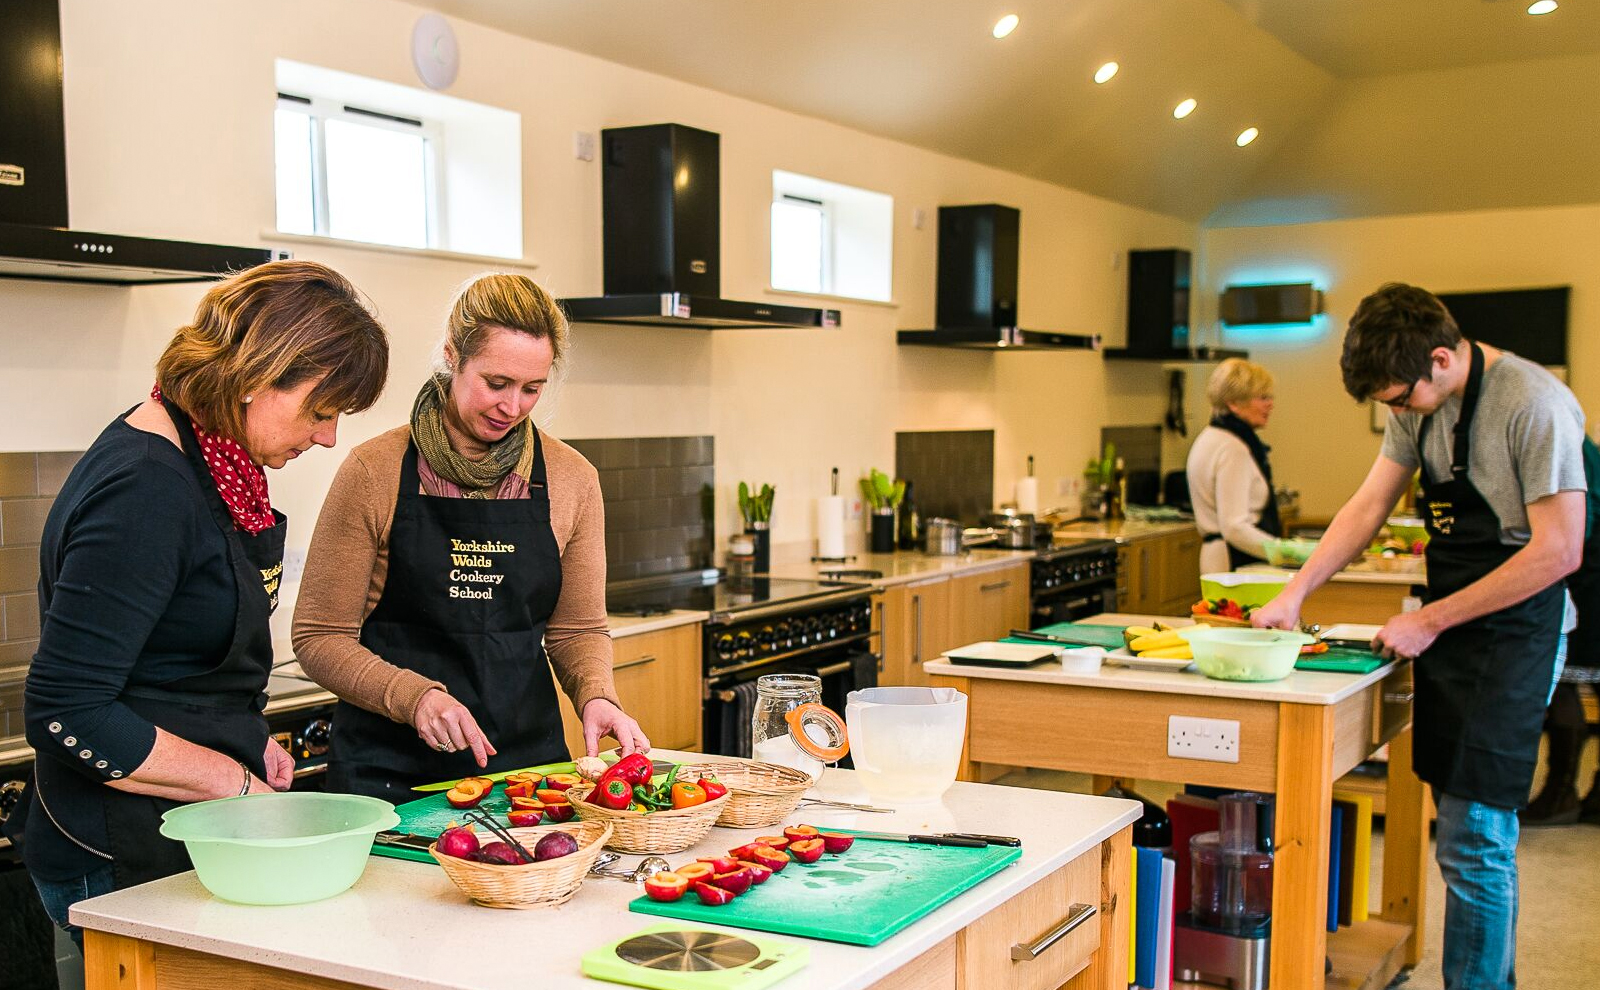 Cookery Class at Yorkshire Wolds Cookery School